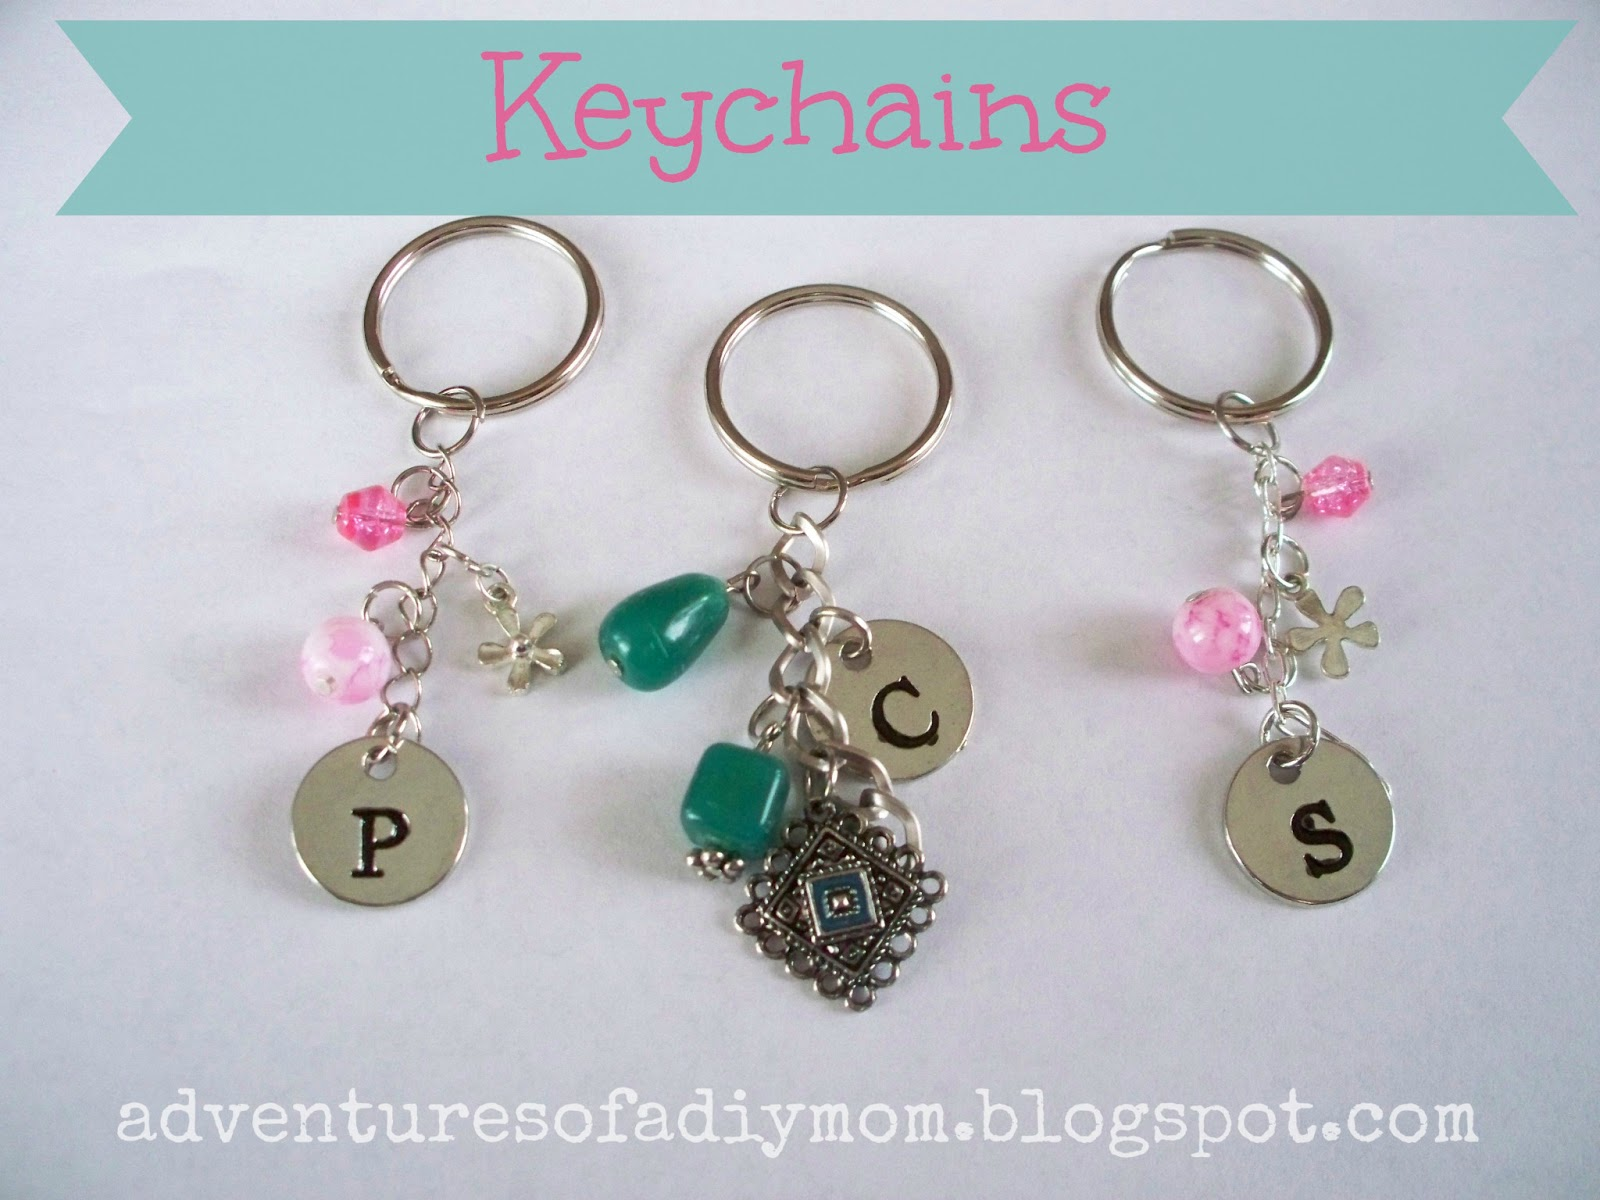 How To Make Your Own Keychains Adventures Of A Diy Mom